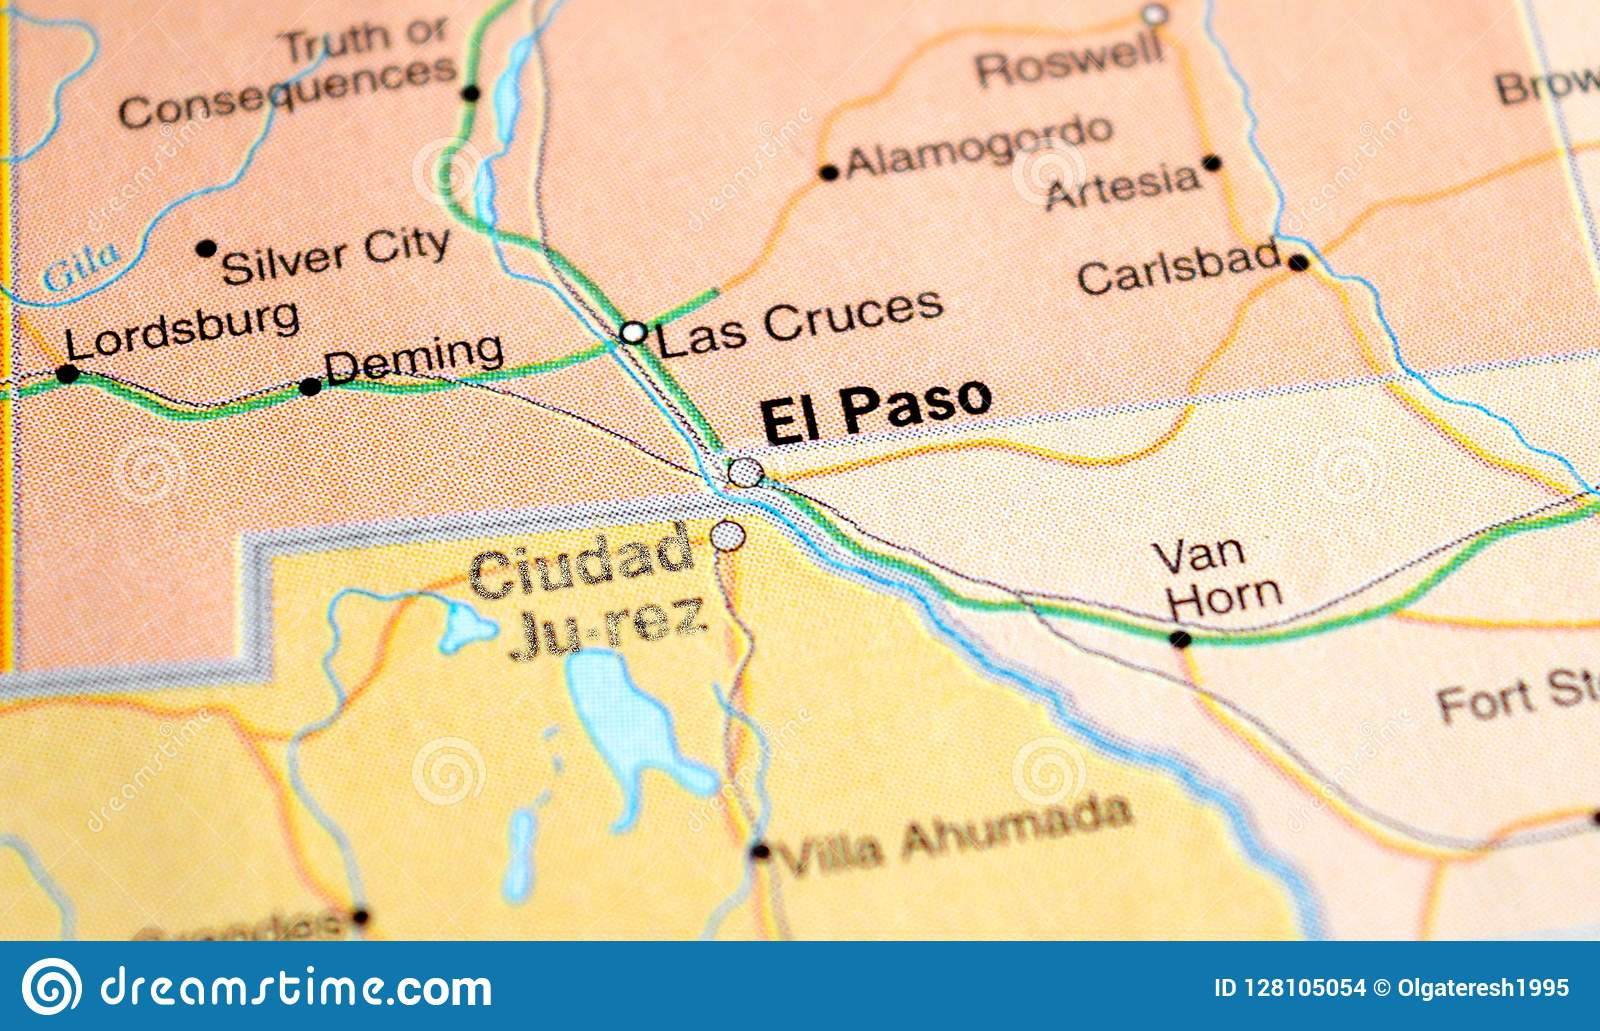 A Photo Of El Paso On A Map Stock Photo - Image of travel ...